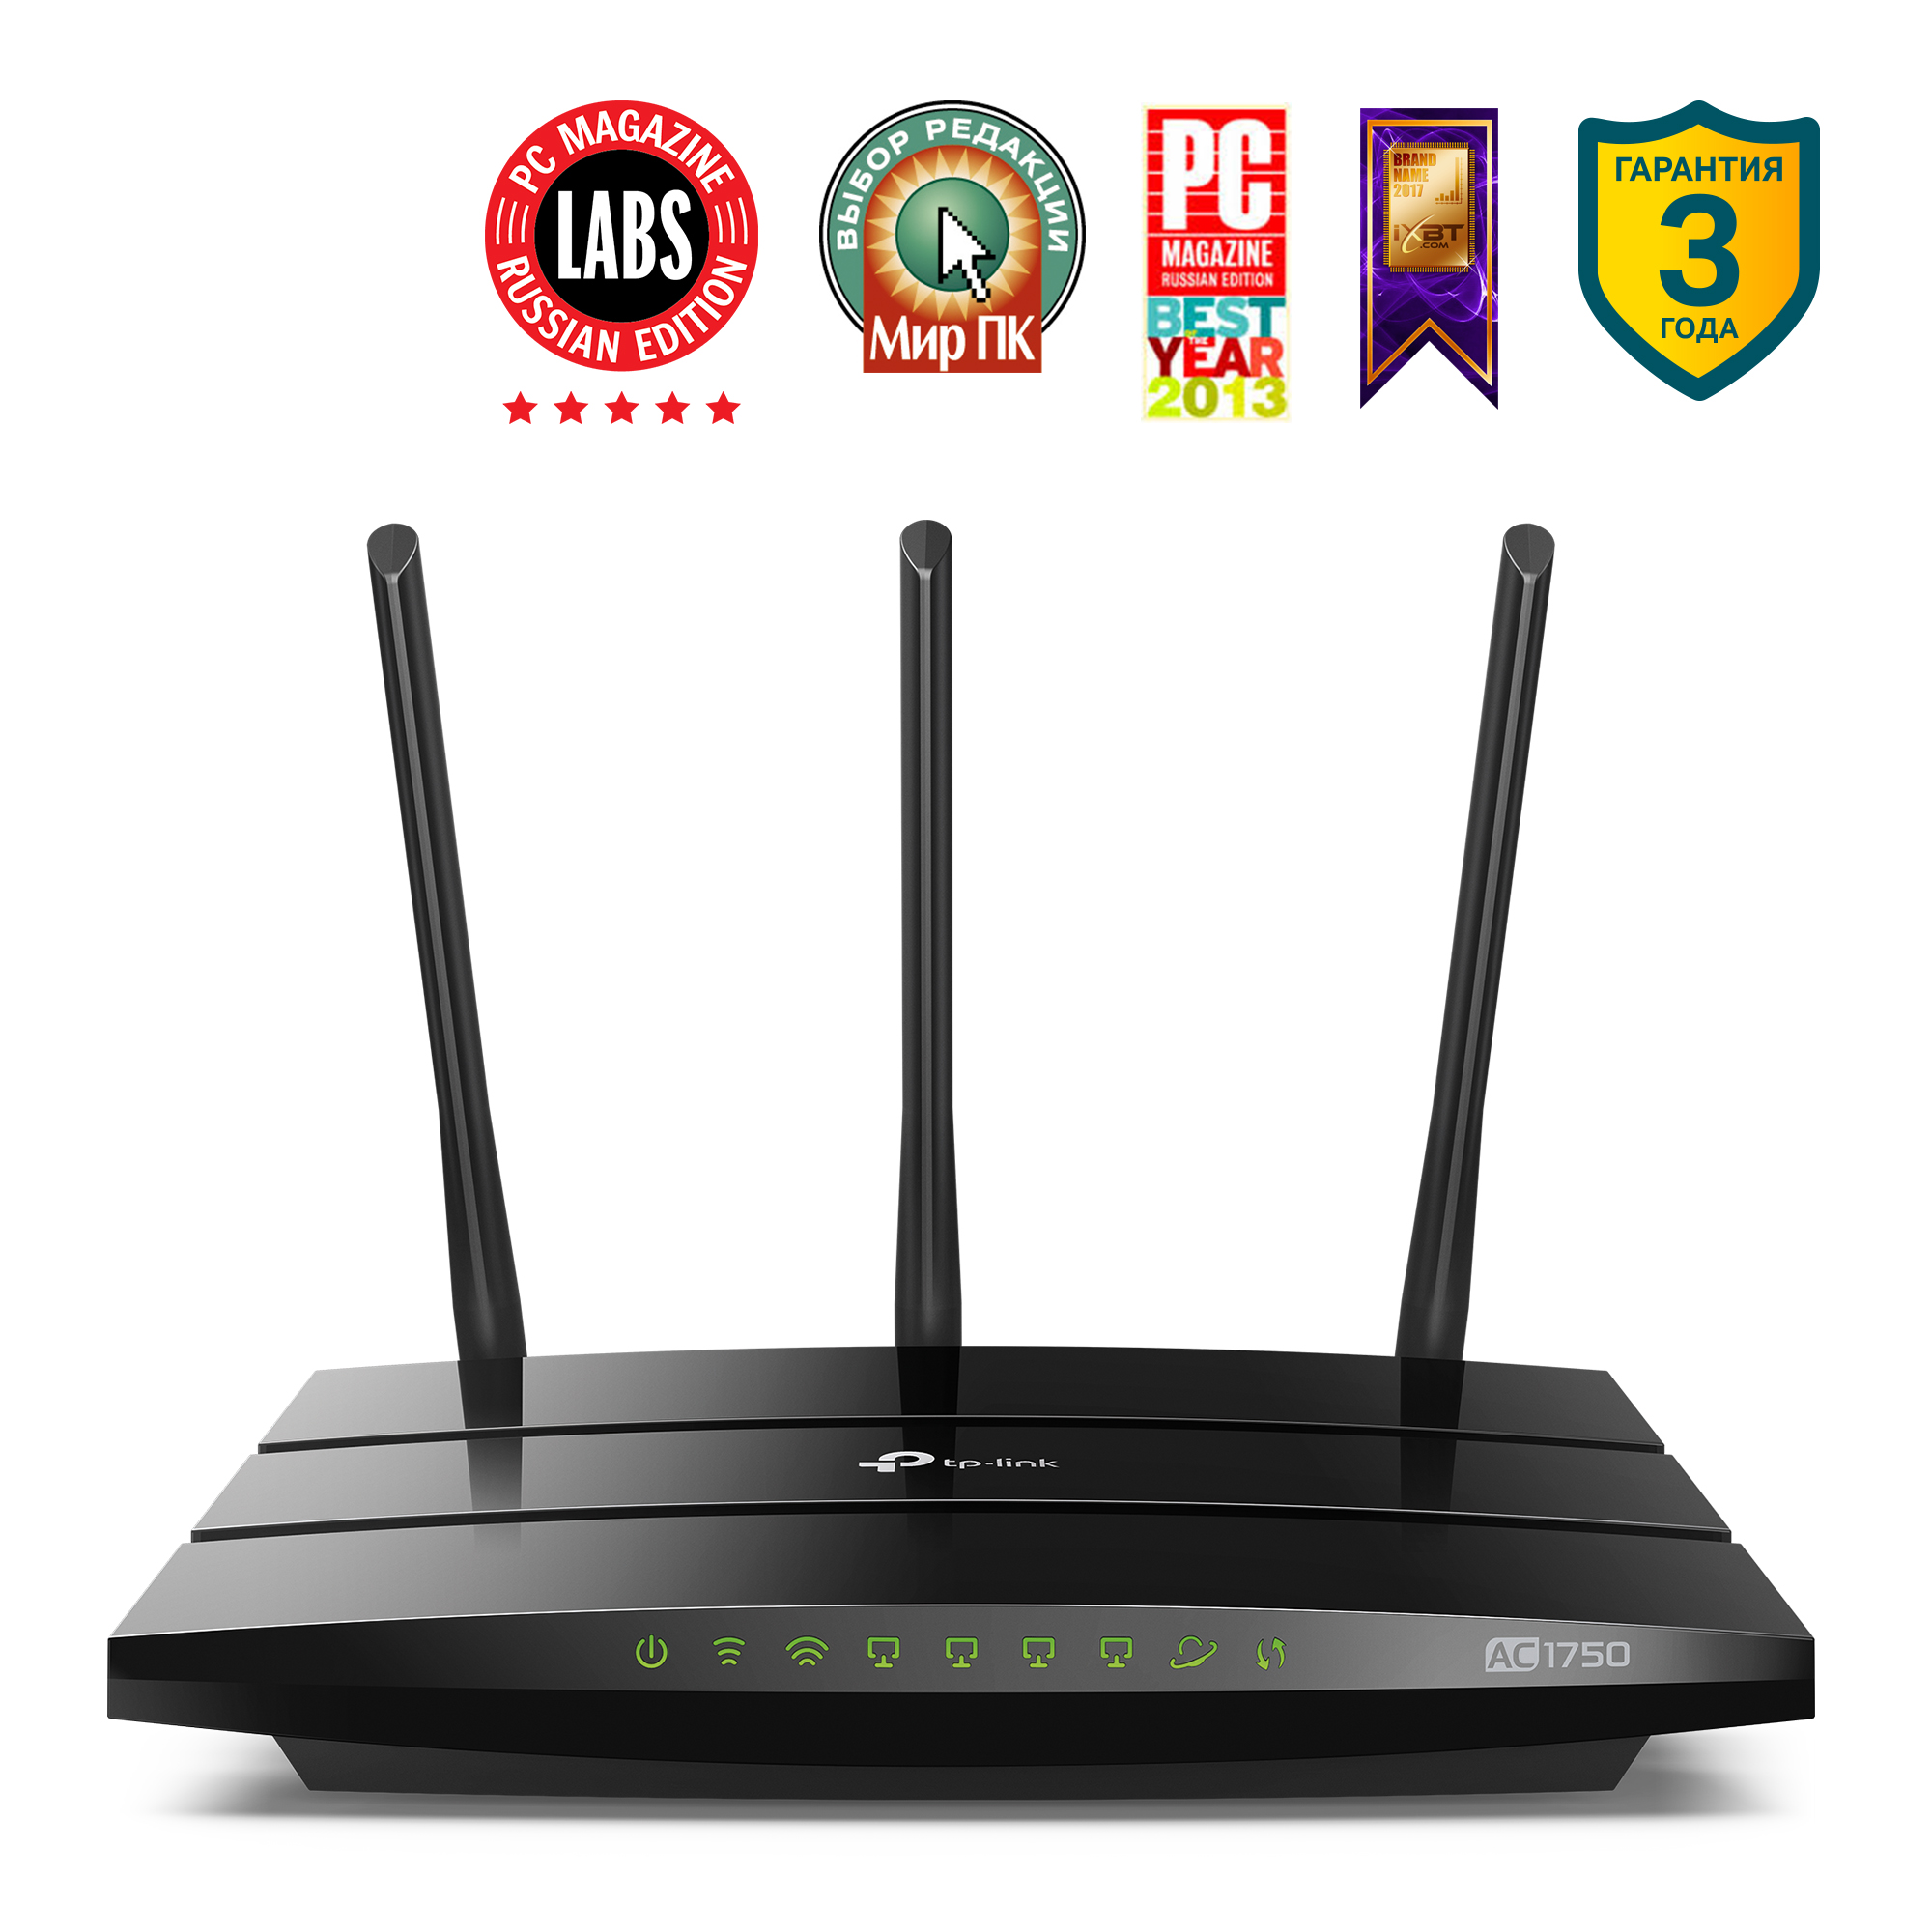 Маршрутизатор TP-LINK Archer C7 AC1750 Двухдиапазонный беспроводной гигабитный маршрутизатор 0 2t casual summer baby dress cotton floral infant girl dresses ruffles toddler baby girl clothes 1 2 years old newborn dress